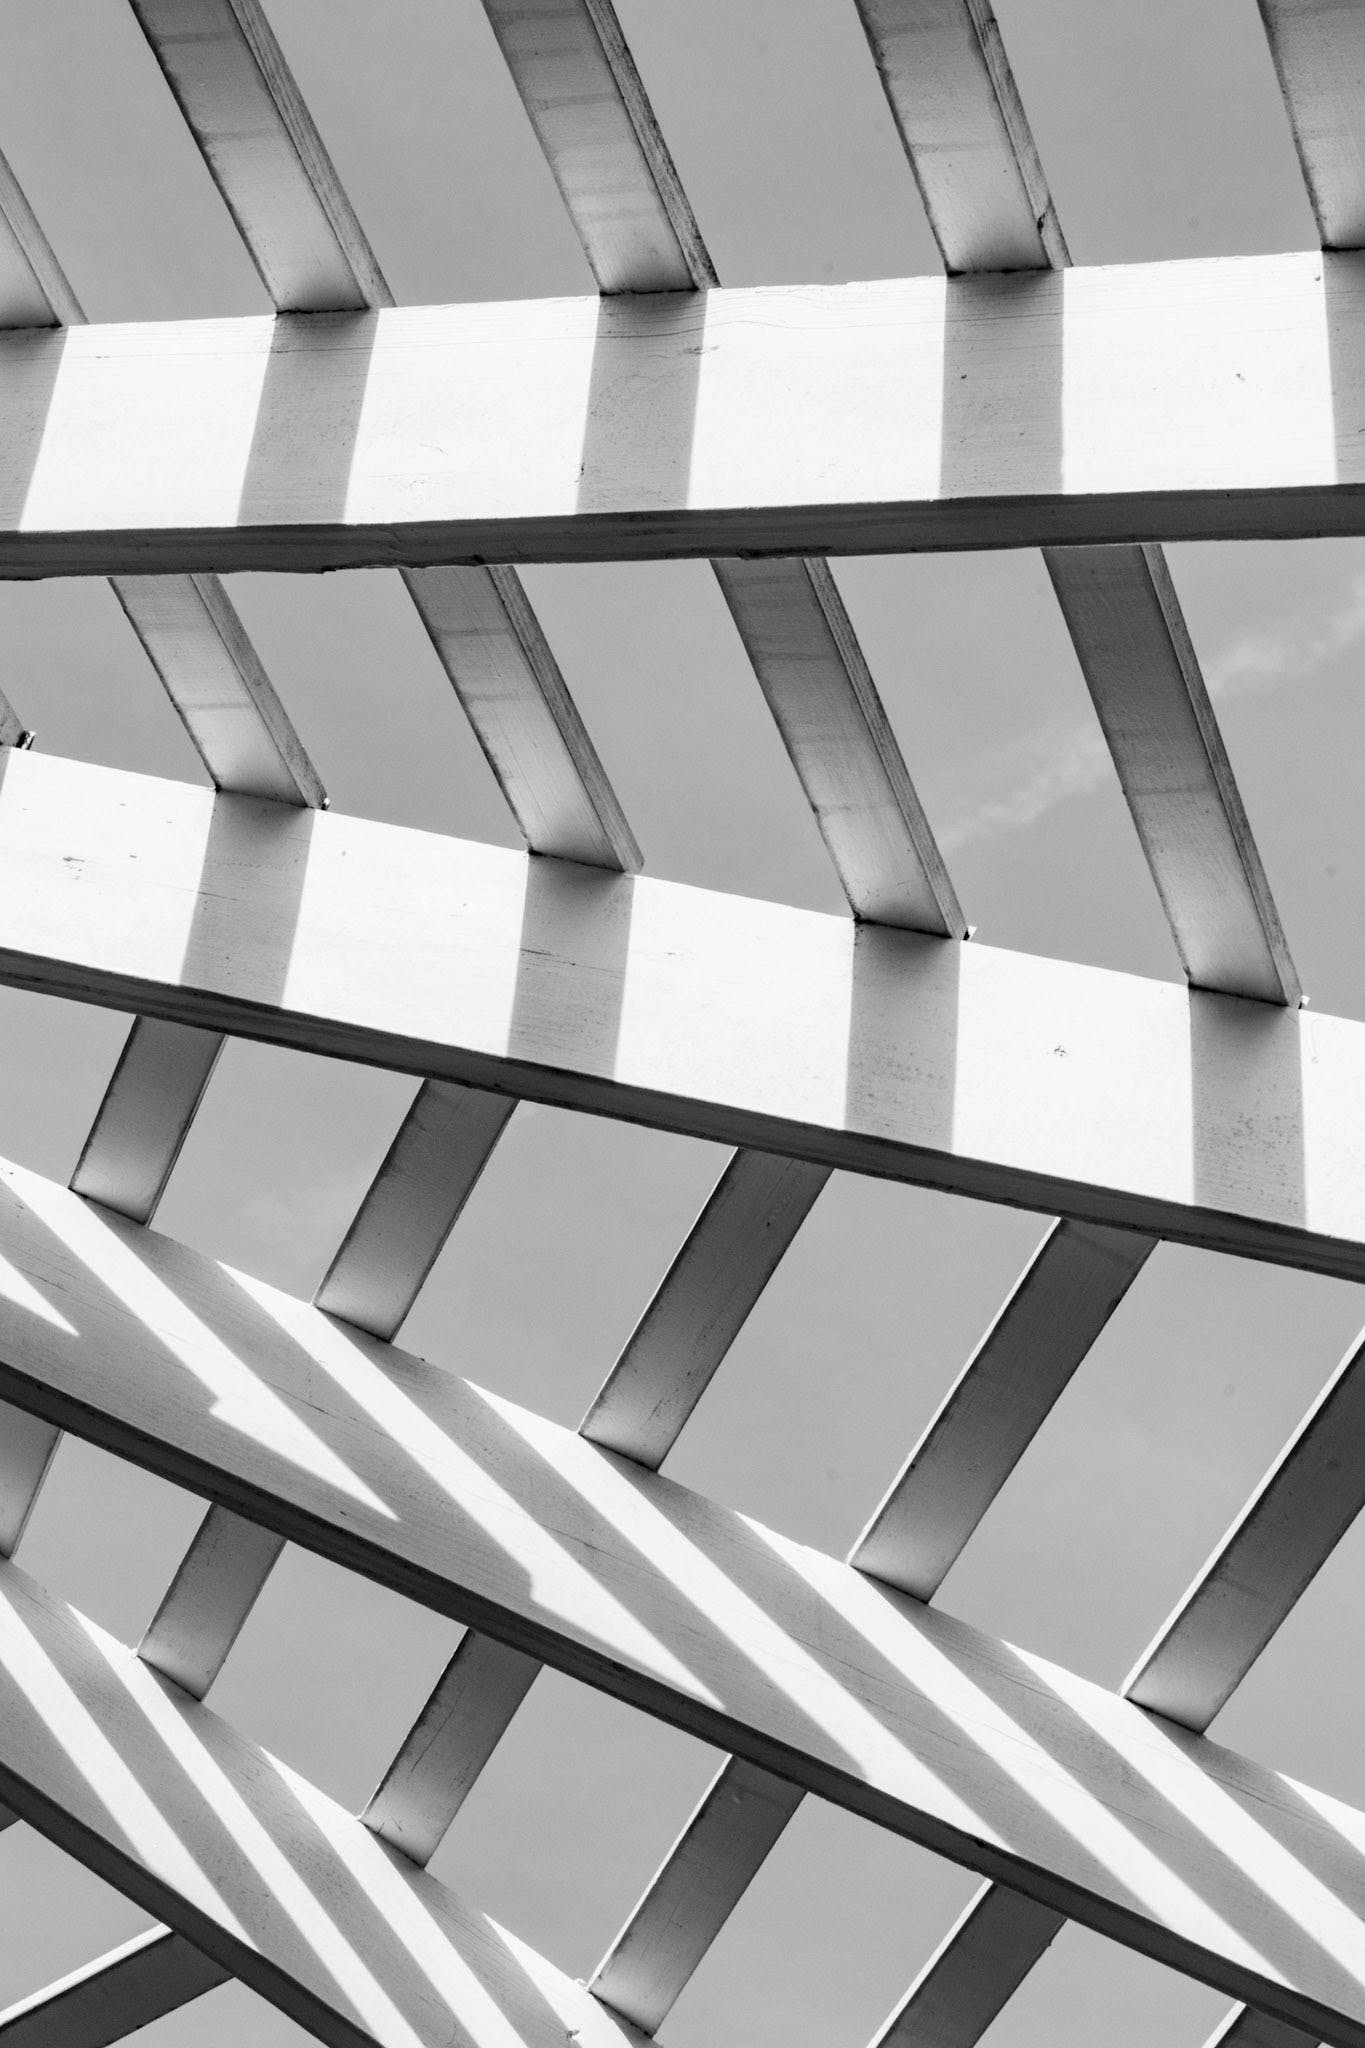 Free stock photo of abstract, abstract photo, lines, monochrome